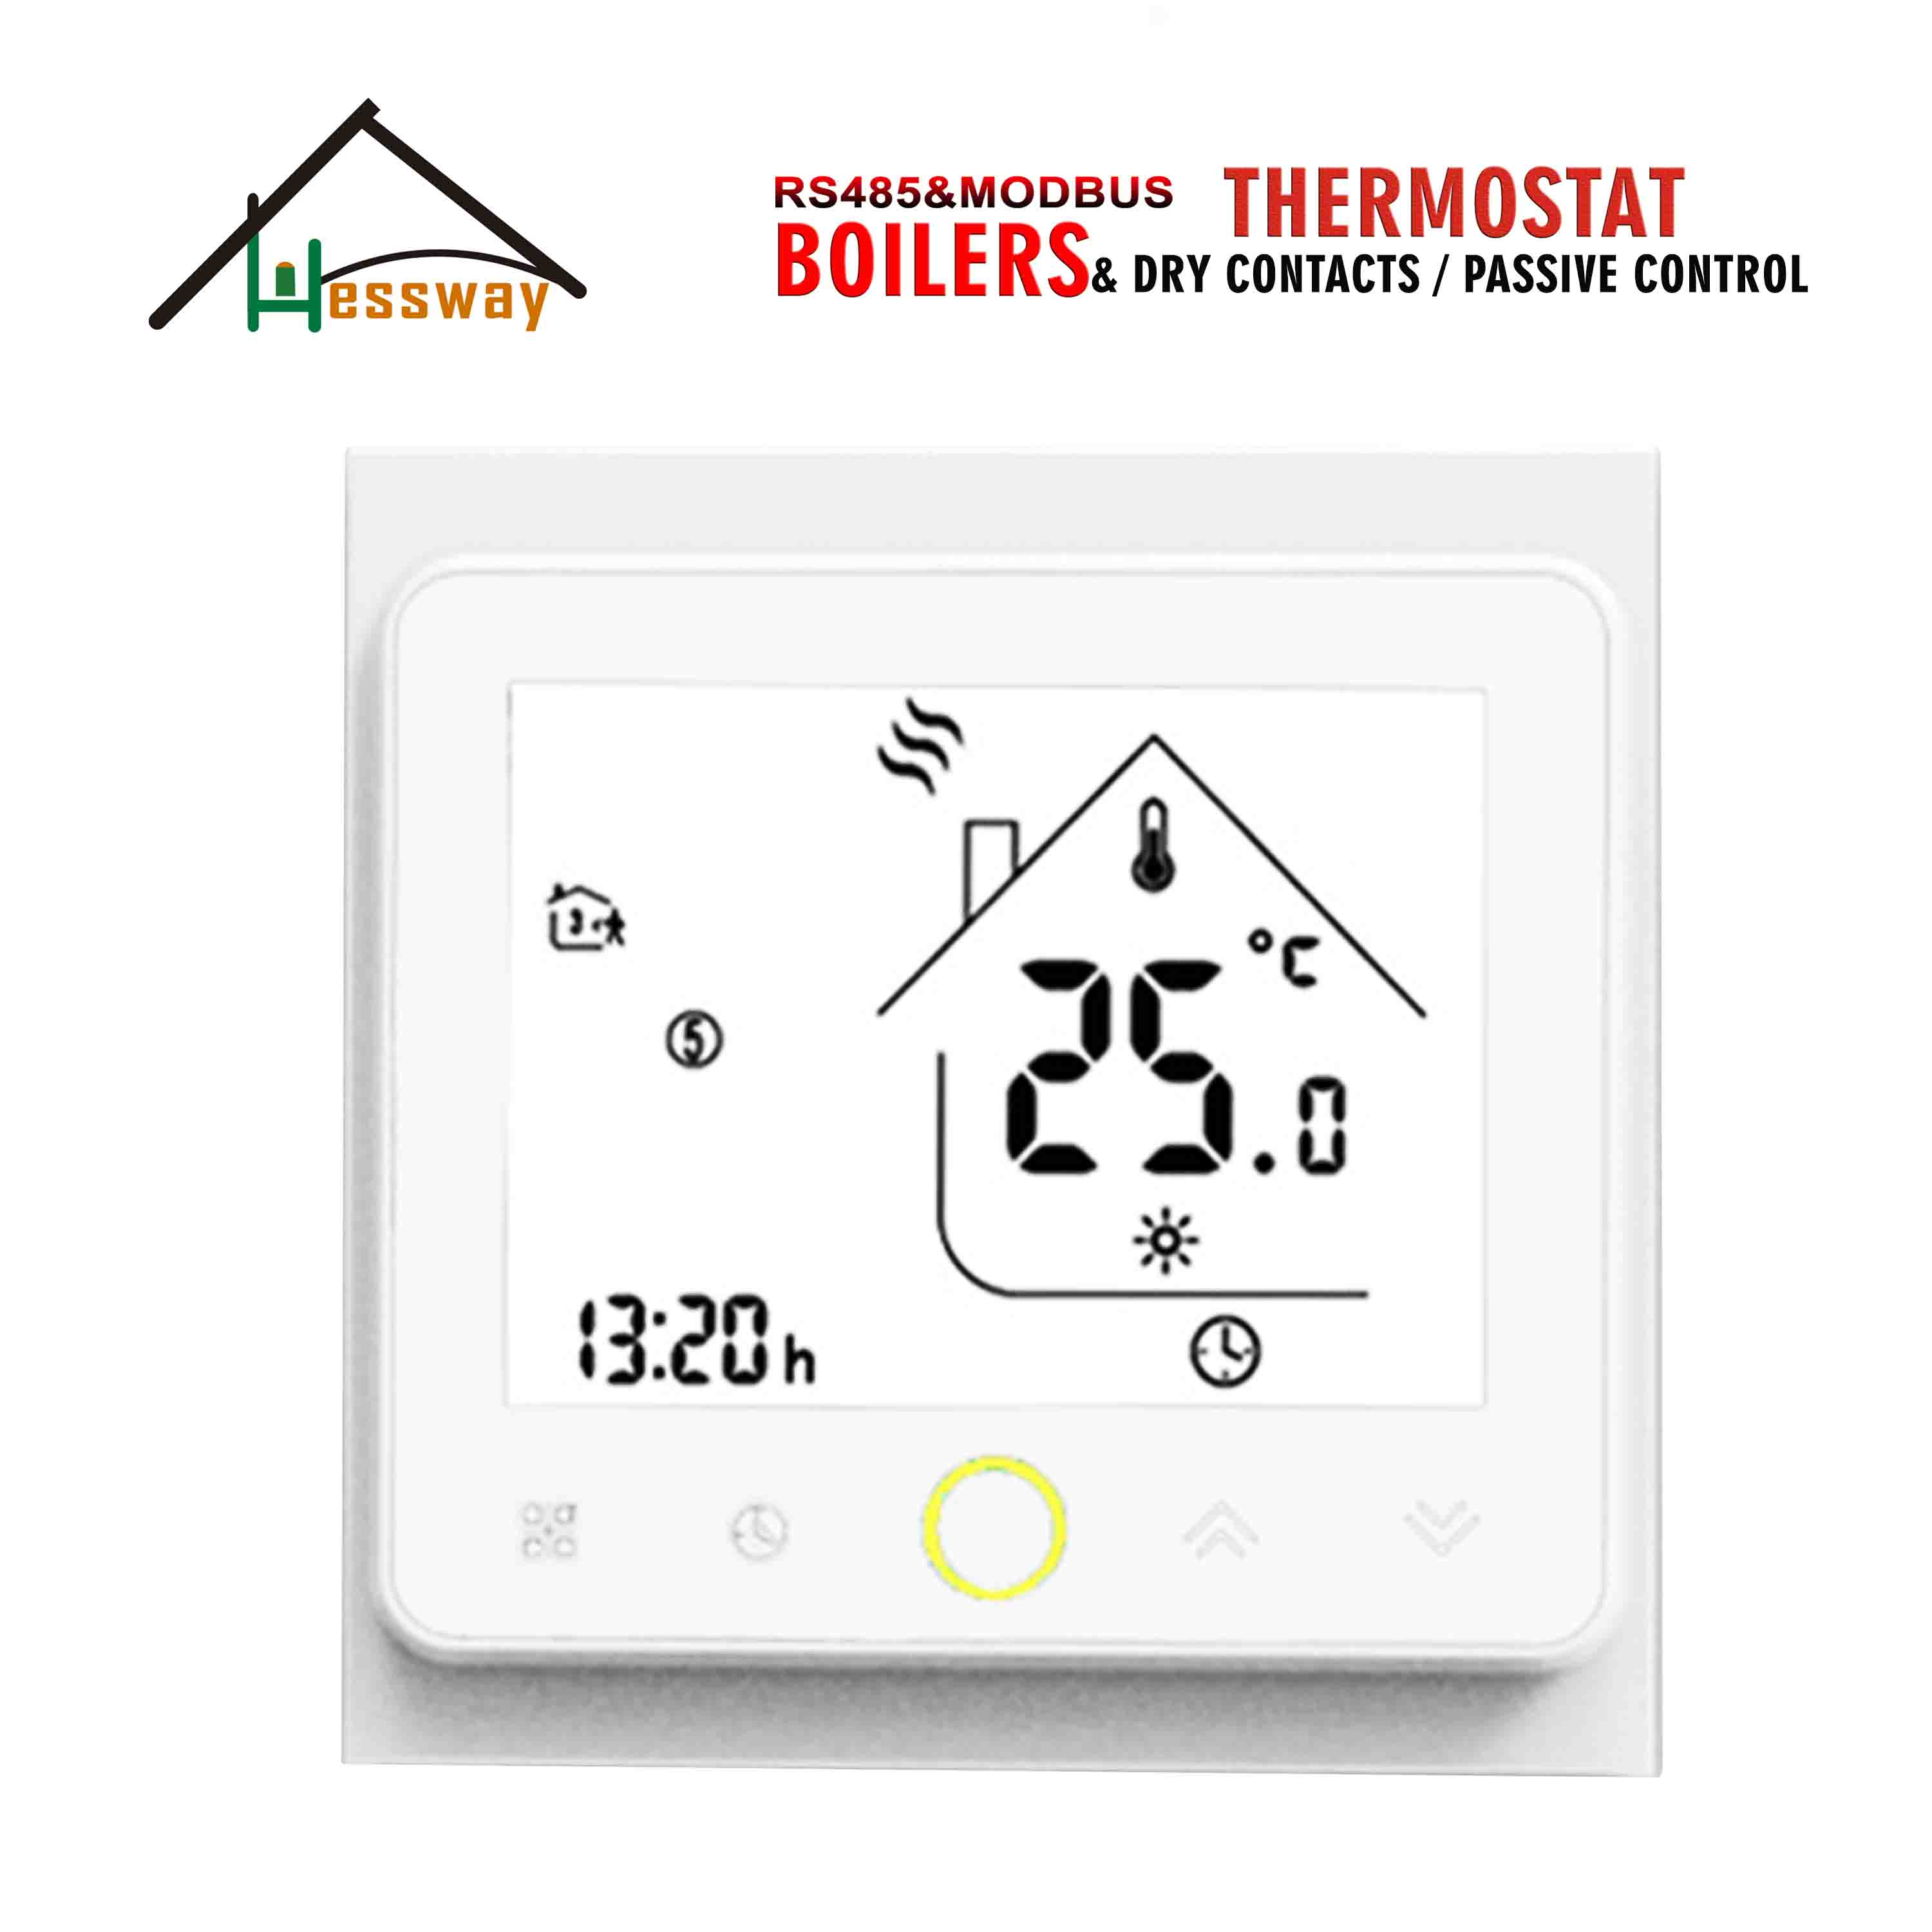 HESSWAY  Programmable Remote PC Control RS485 Modbus Thermostat For GasBoiler Dry Contact On&Off Control